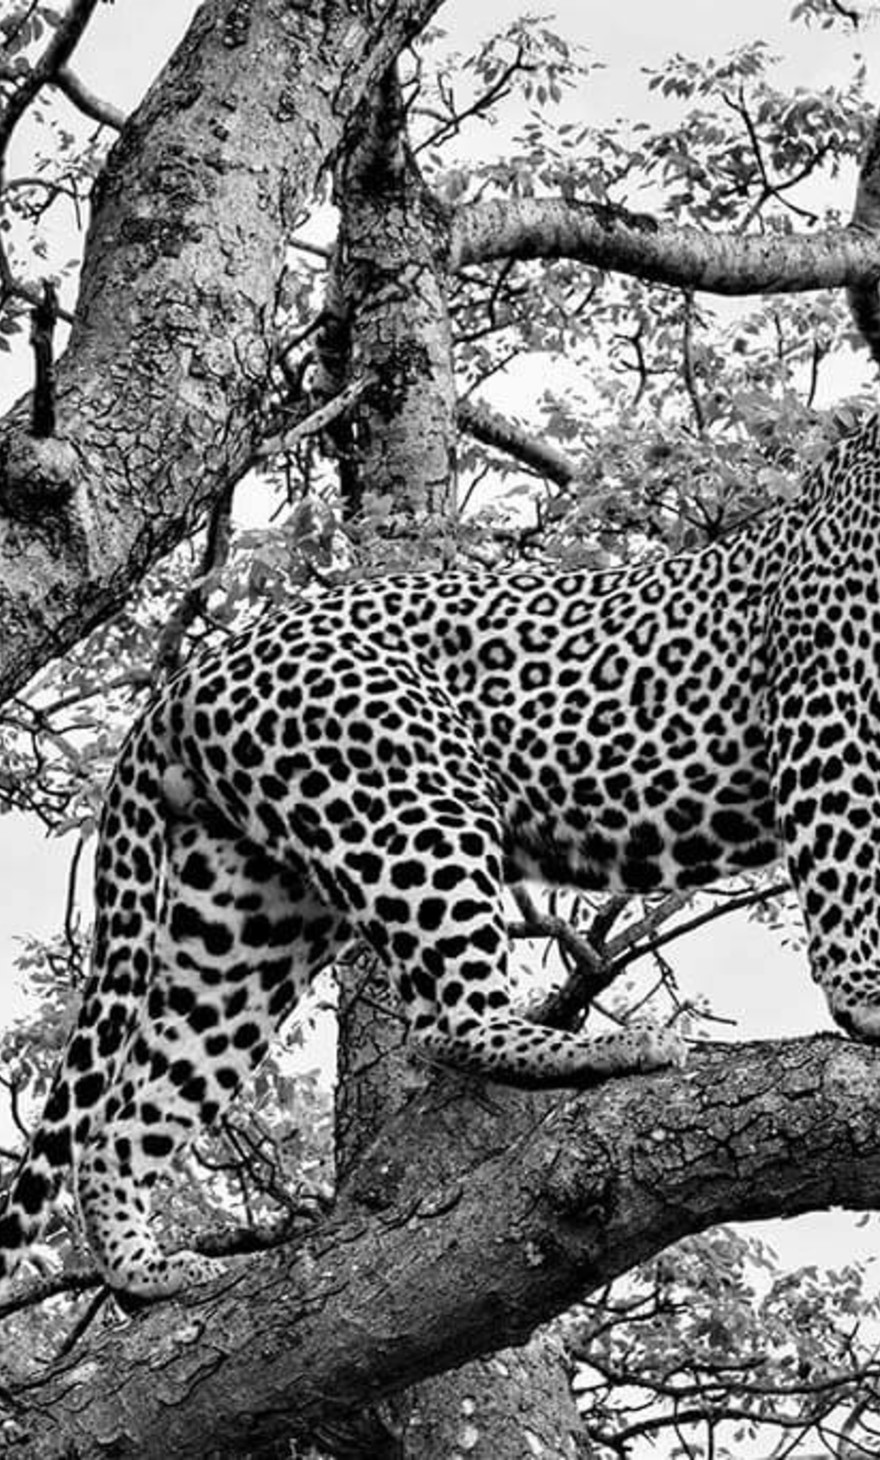 Cheeta in tree